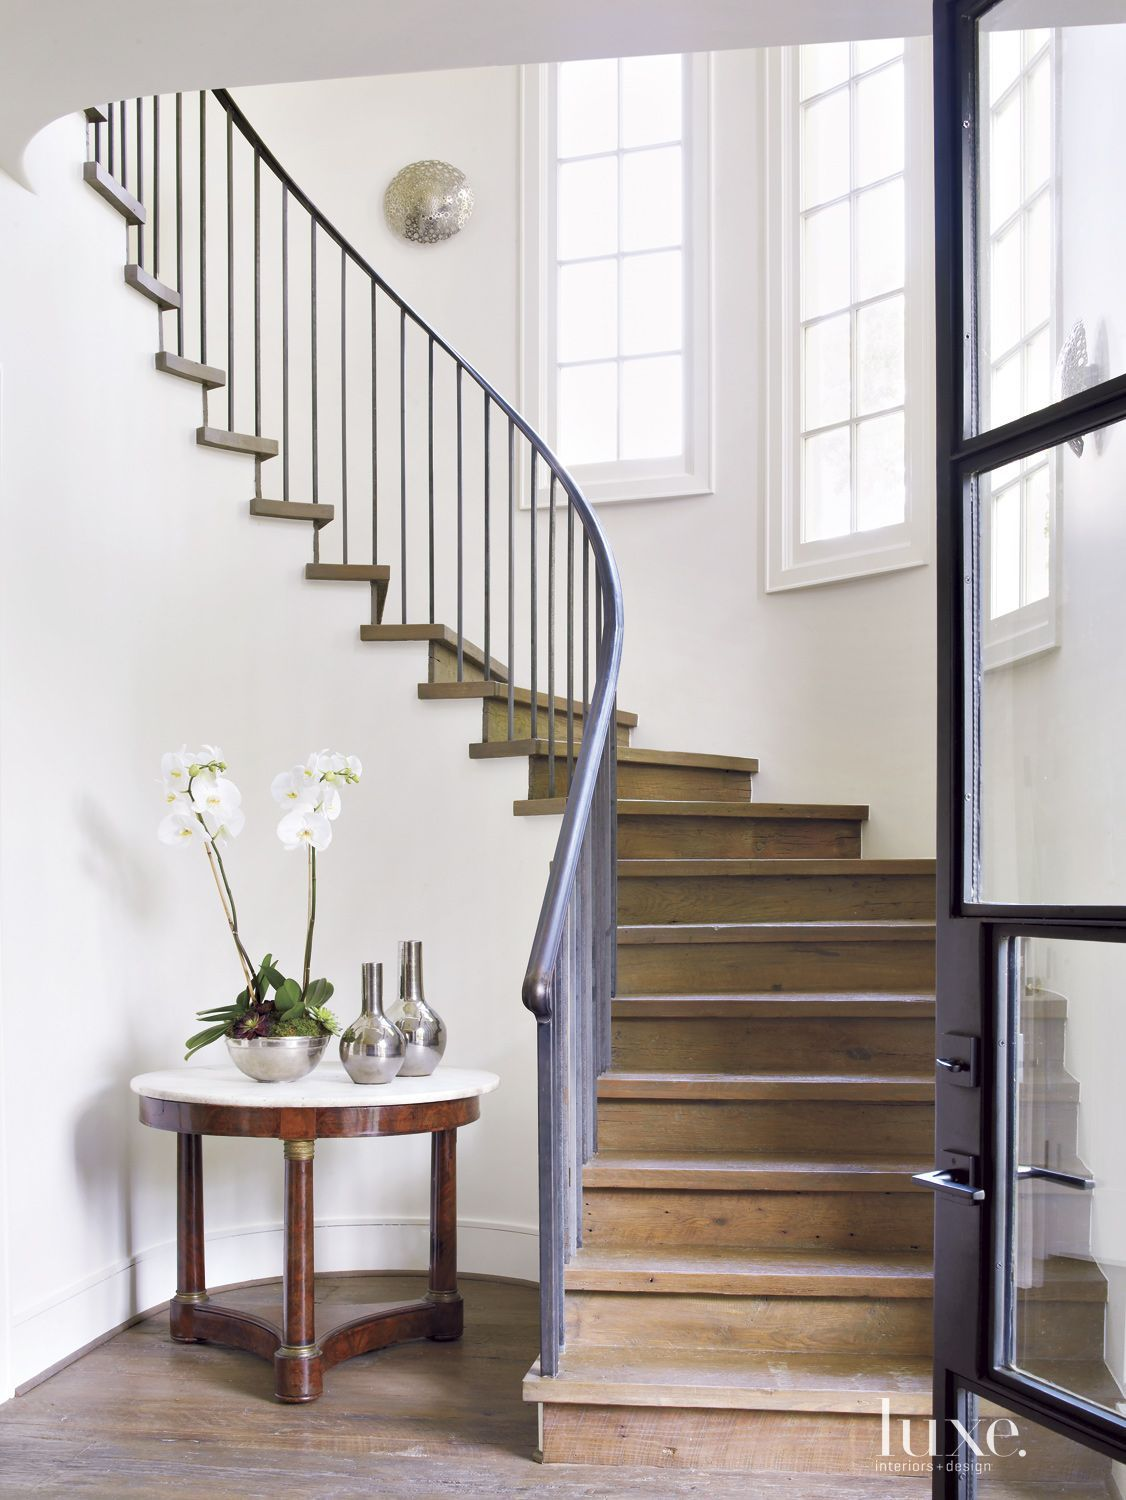 18 Houston Homes With Timeless Design | Create, Staircases and White ...